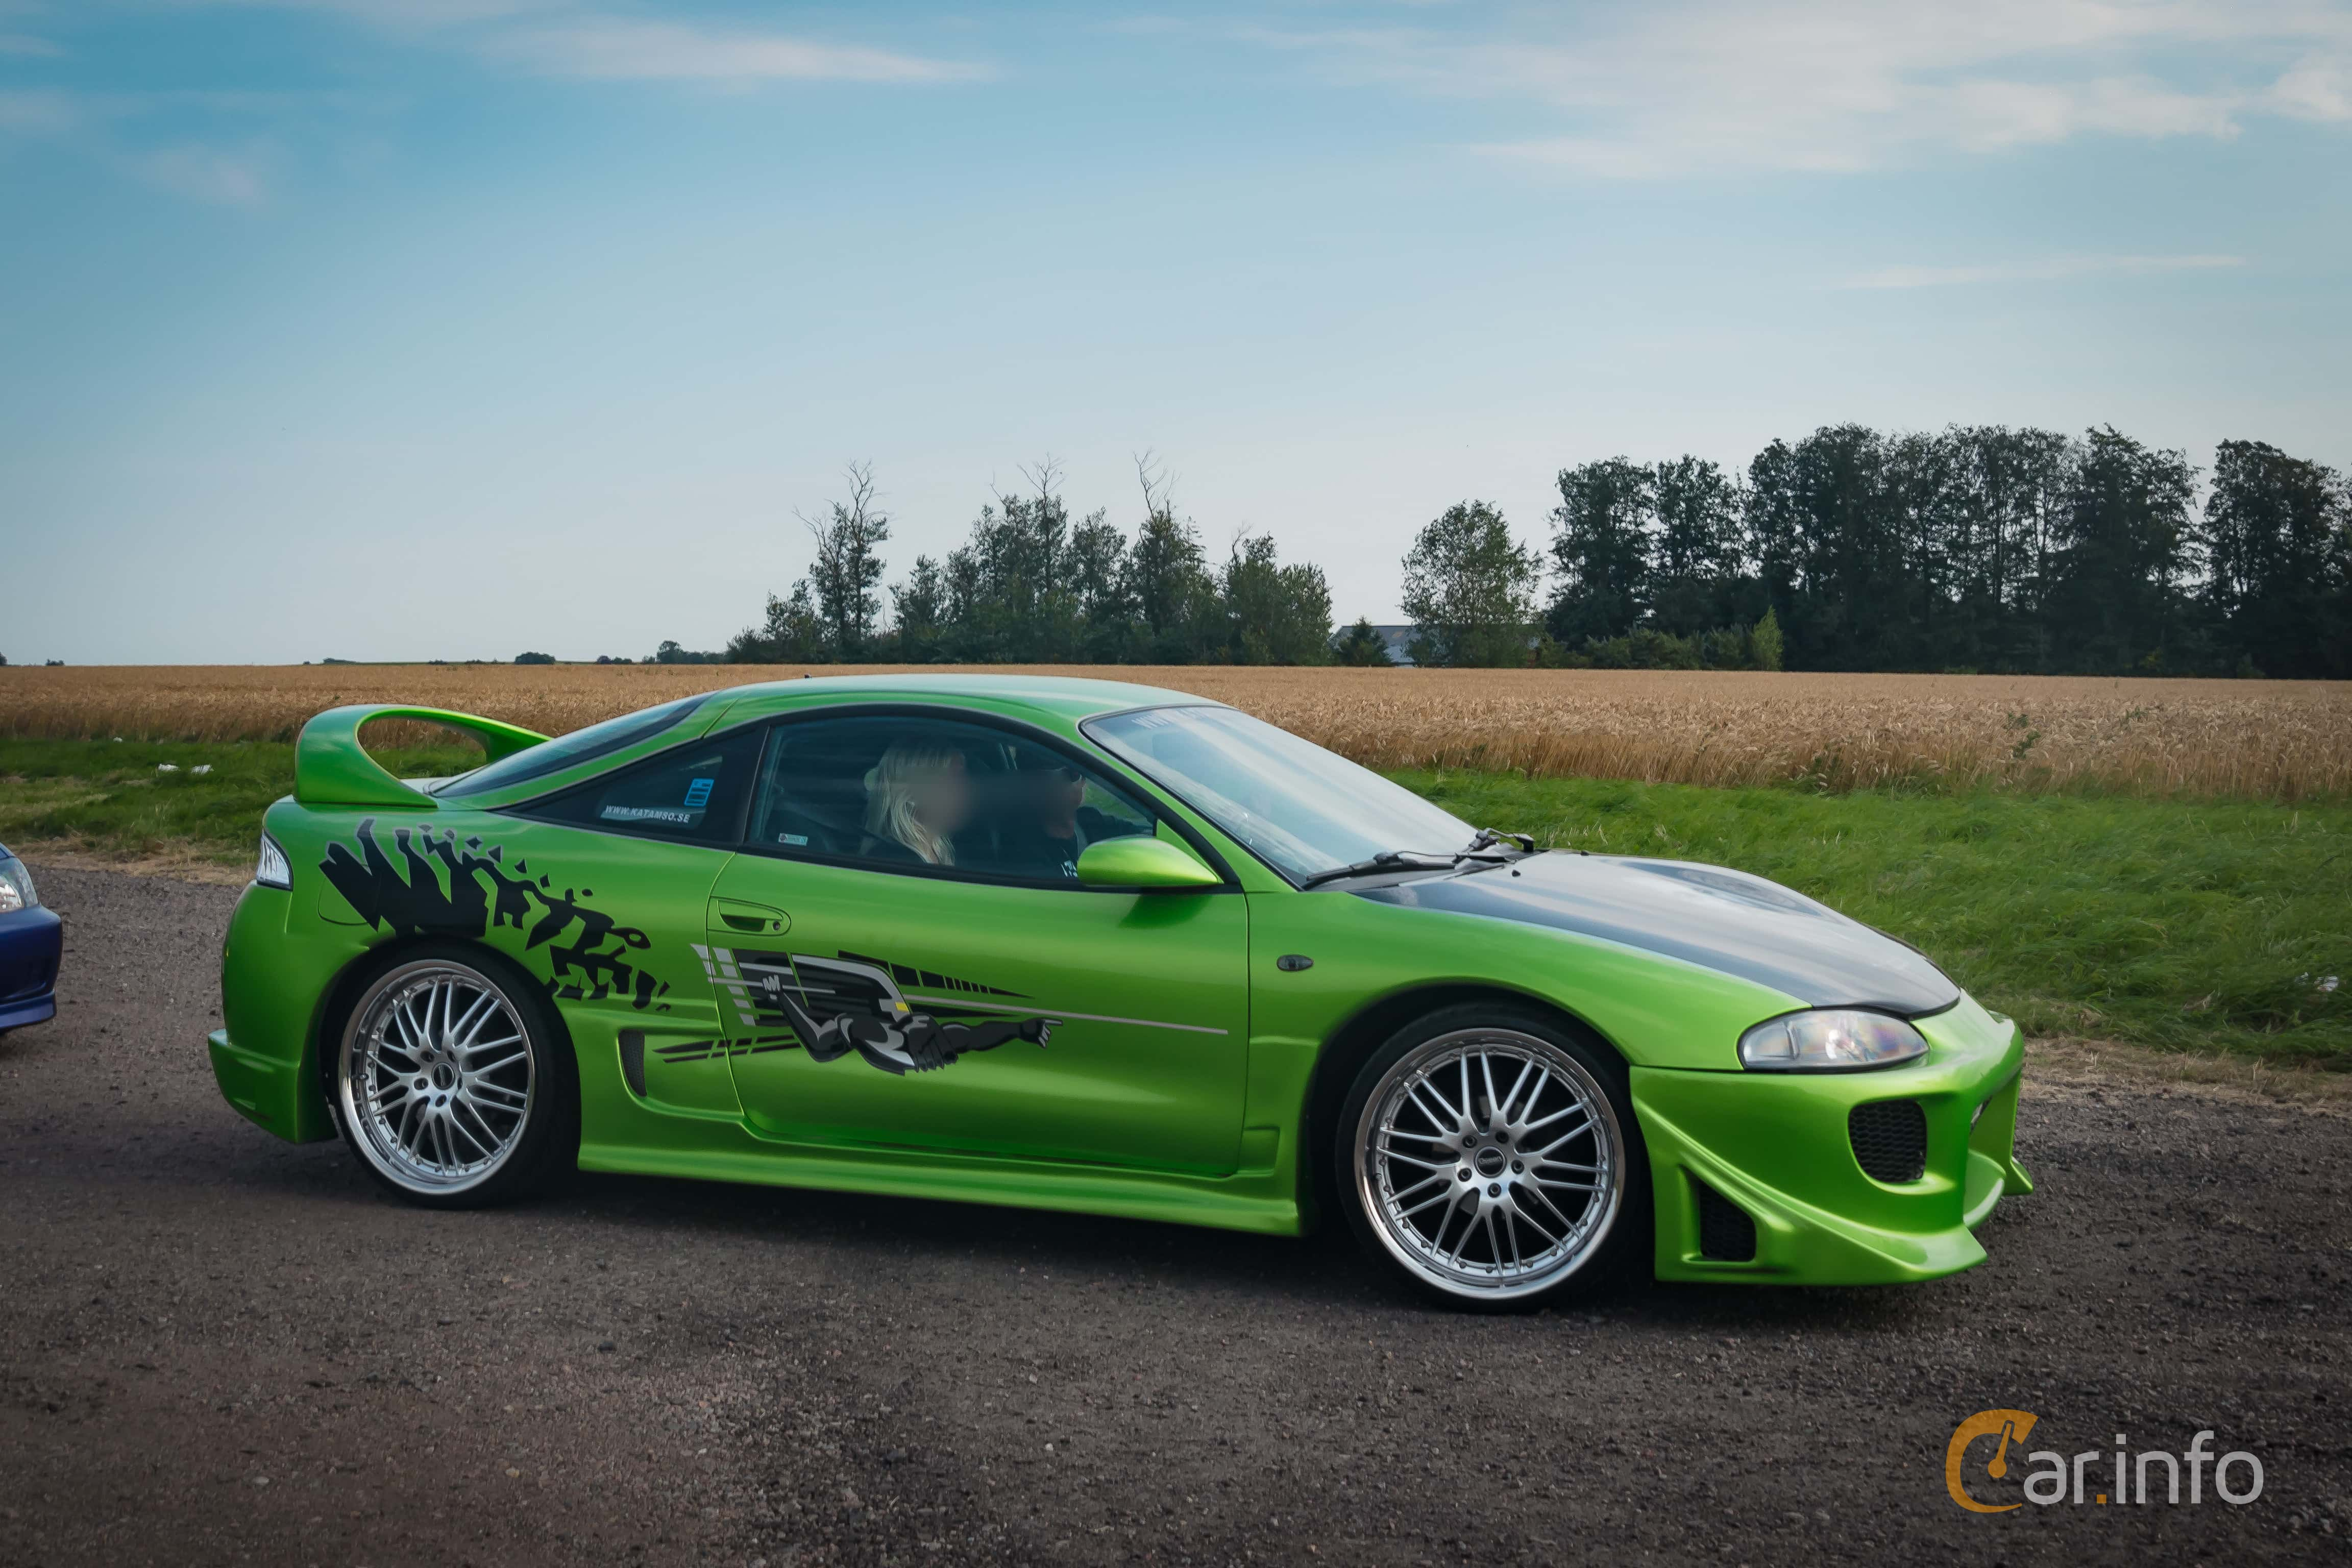 Mitsubishi Eclipse 2015 >> 3 Images Of Mitsubishi Eclipse 2 0 Manual 141hp 1997 By Marcusliedholm